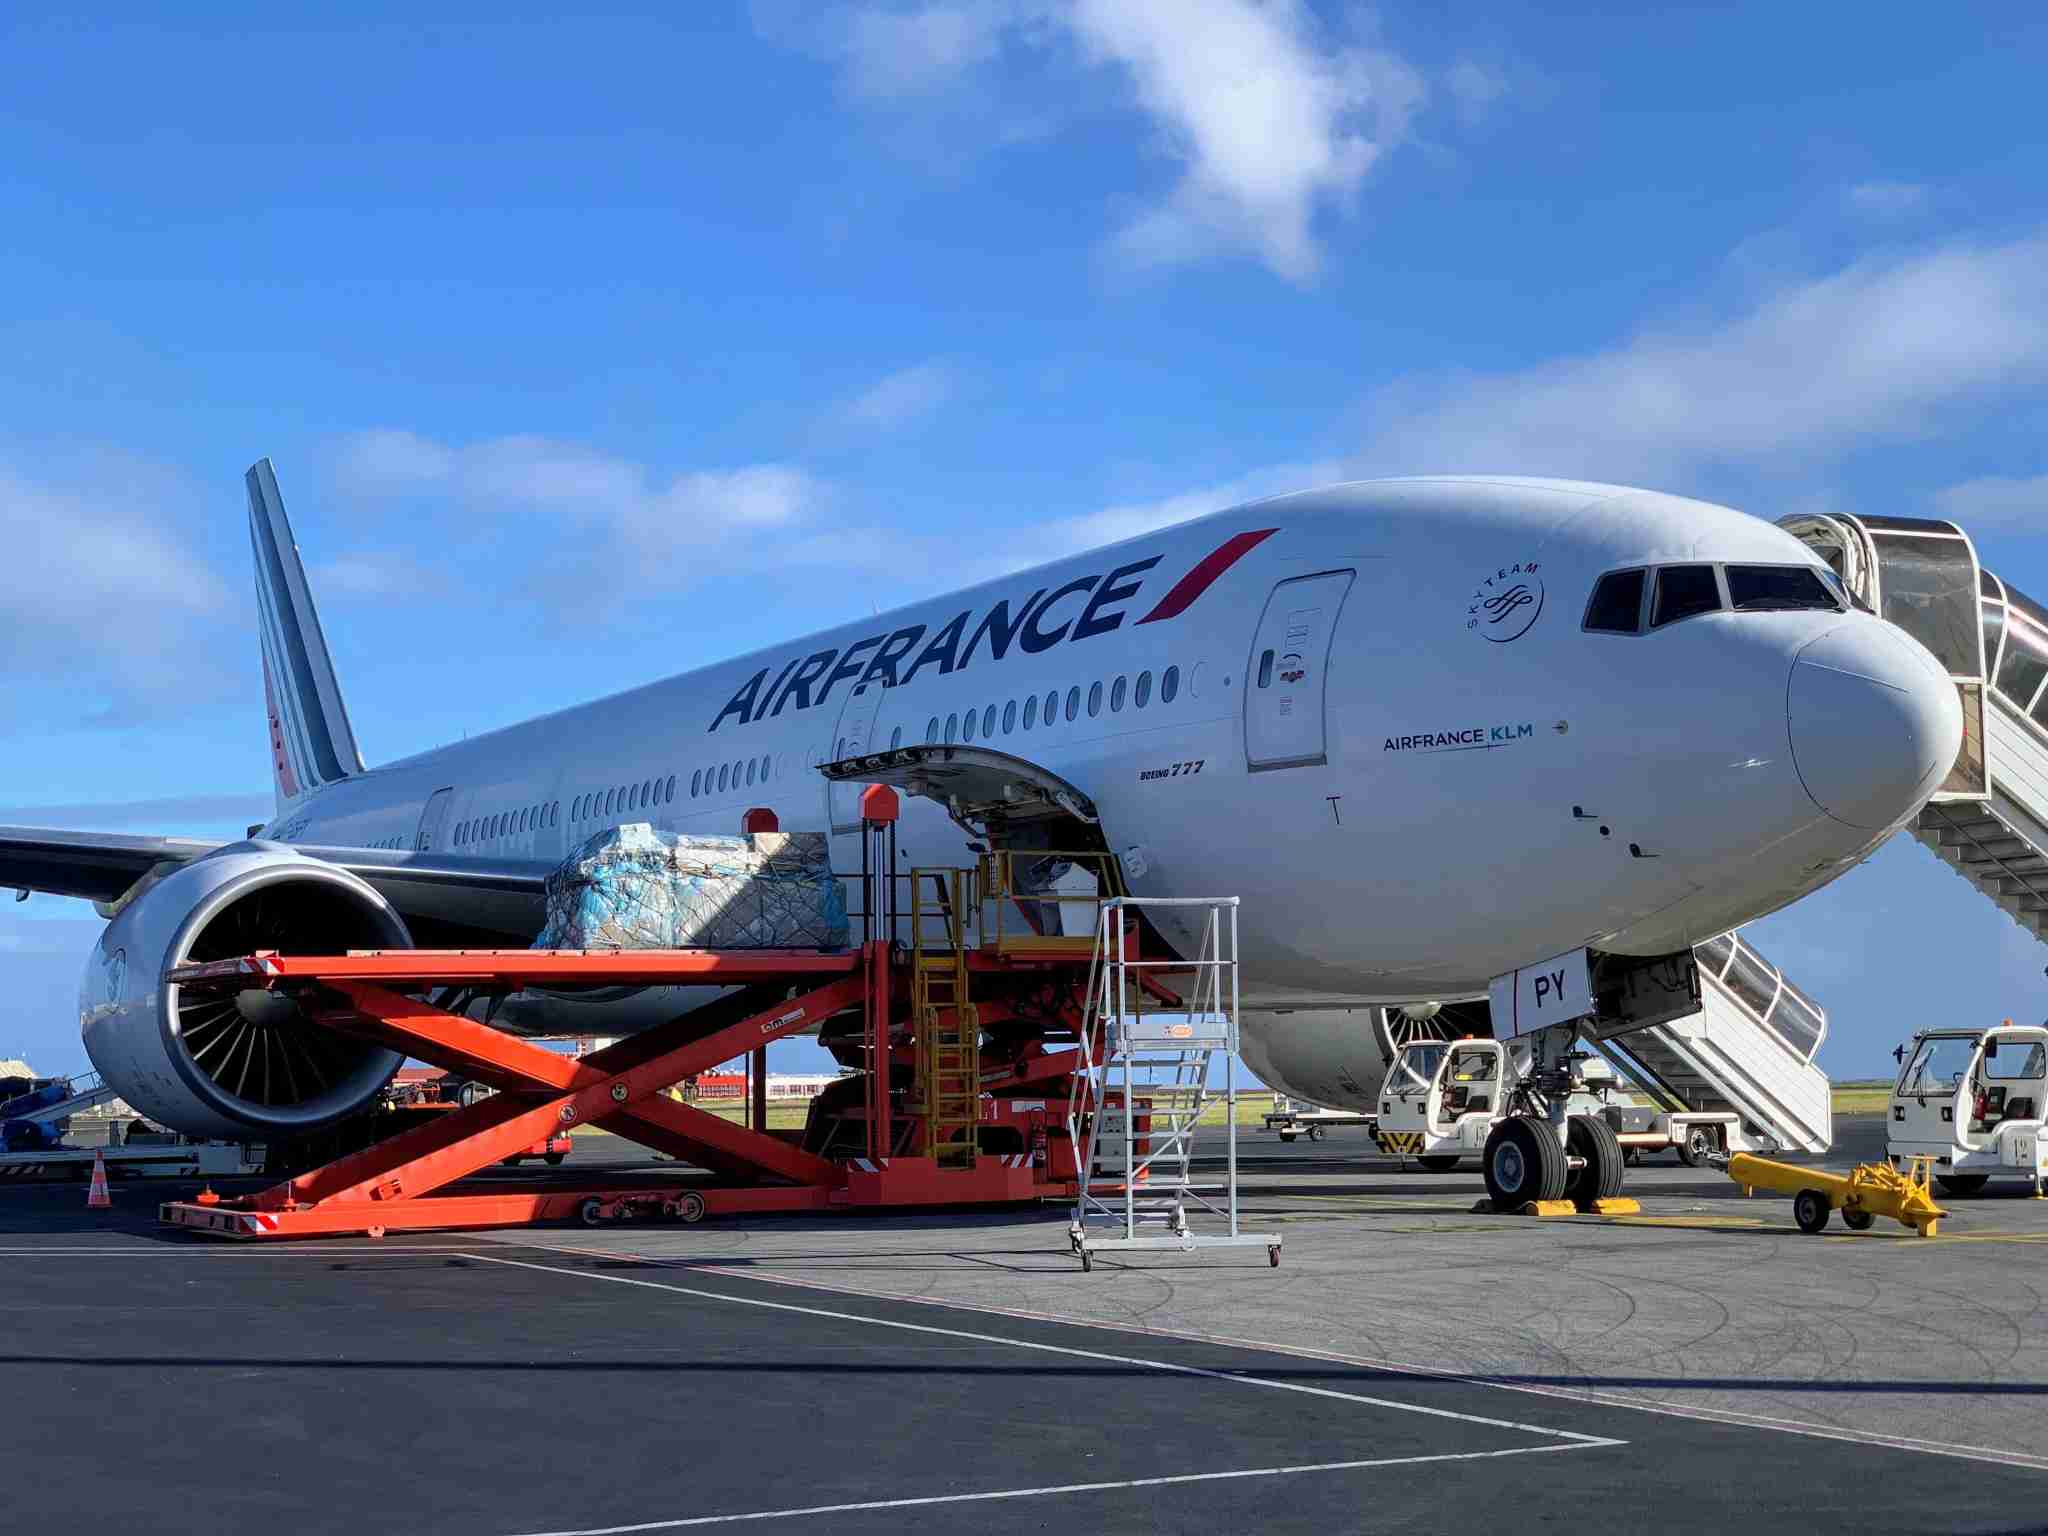 Air France Boeing 777-200 in PPT (loading)